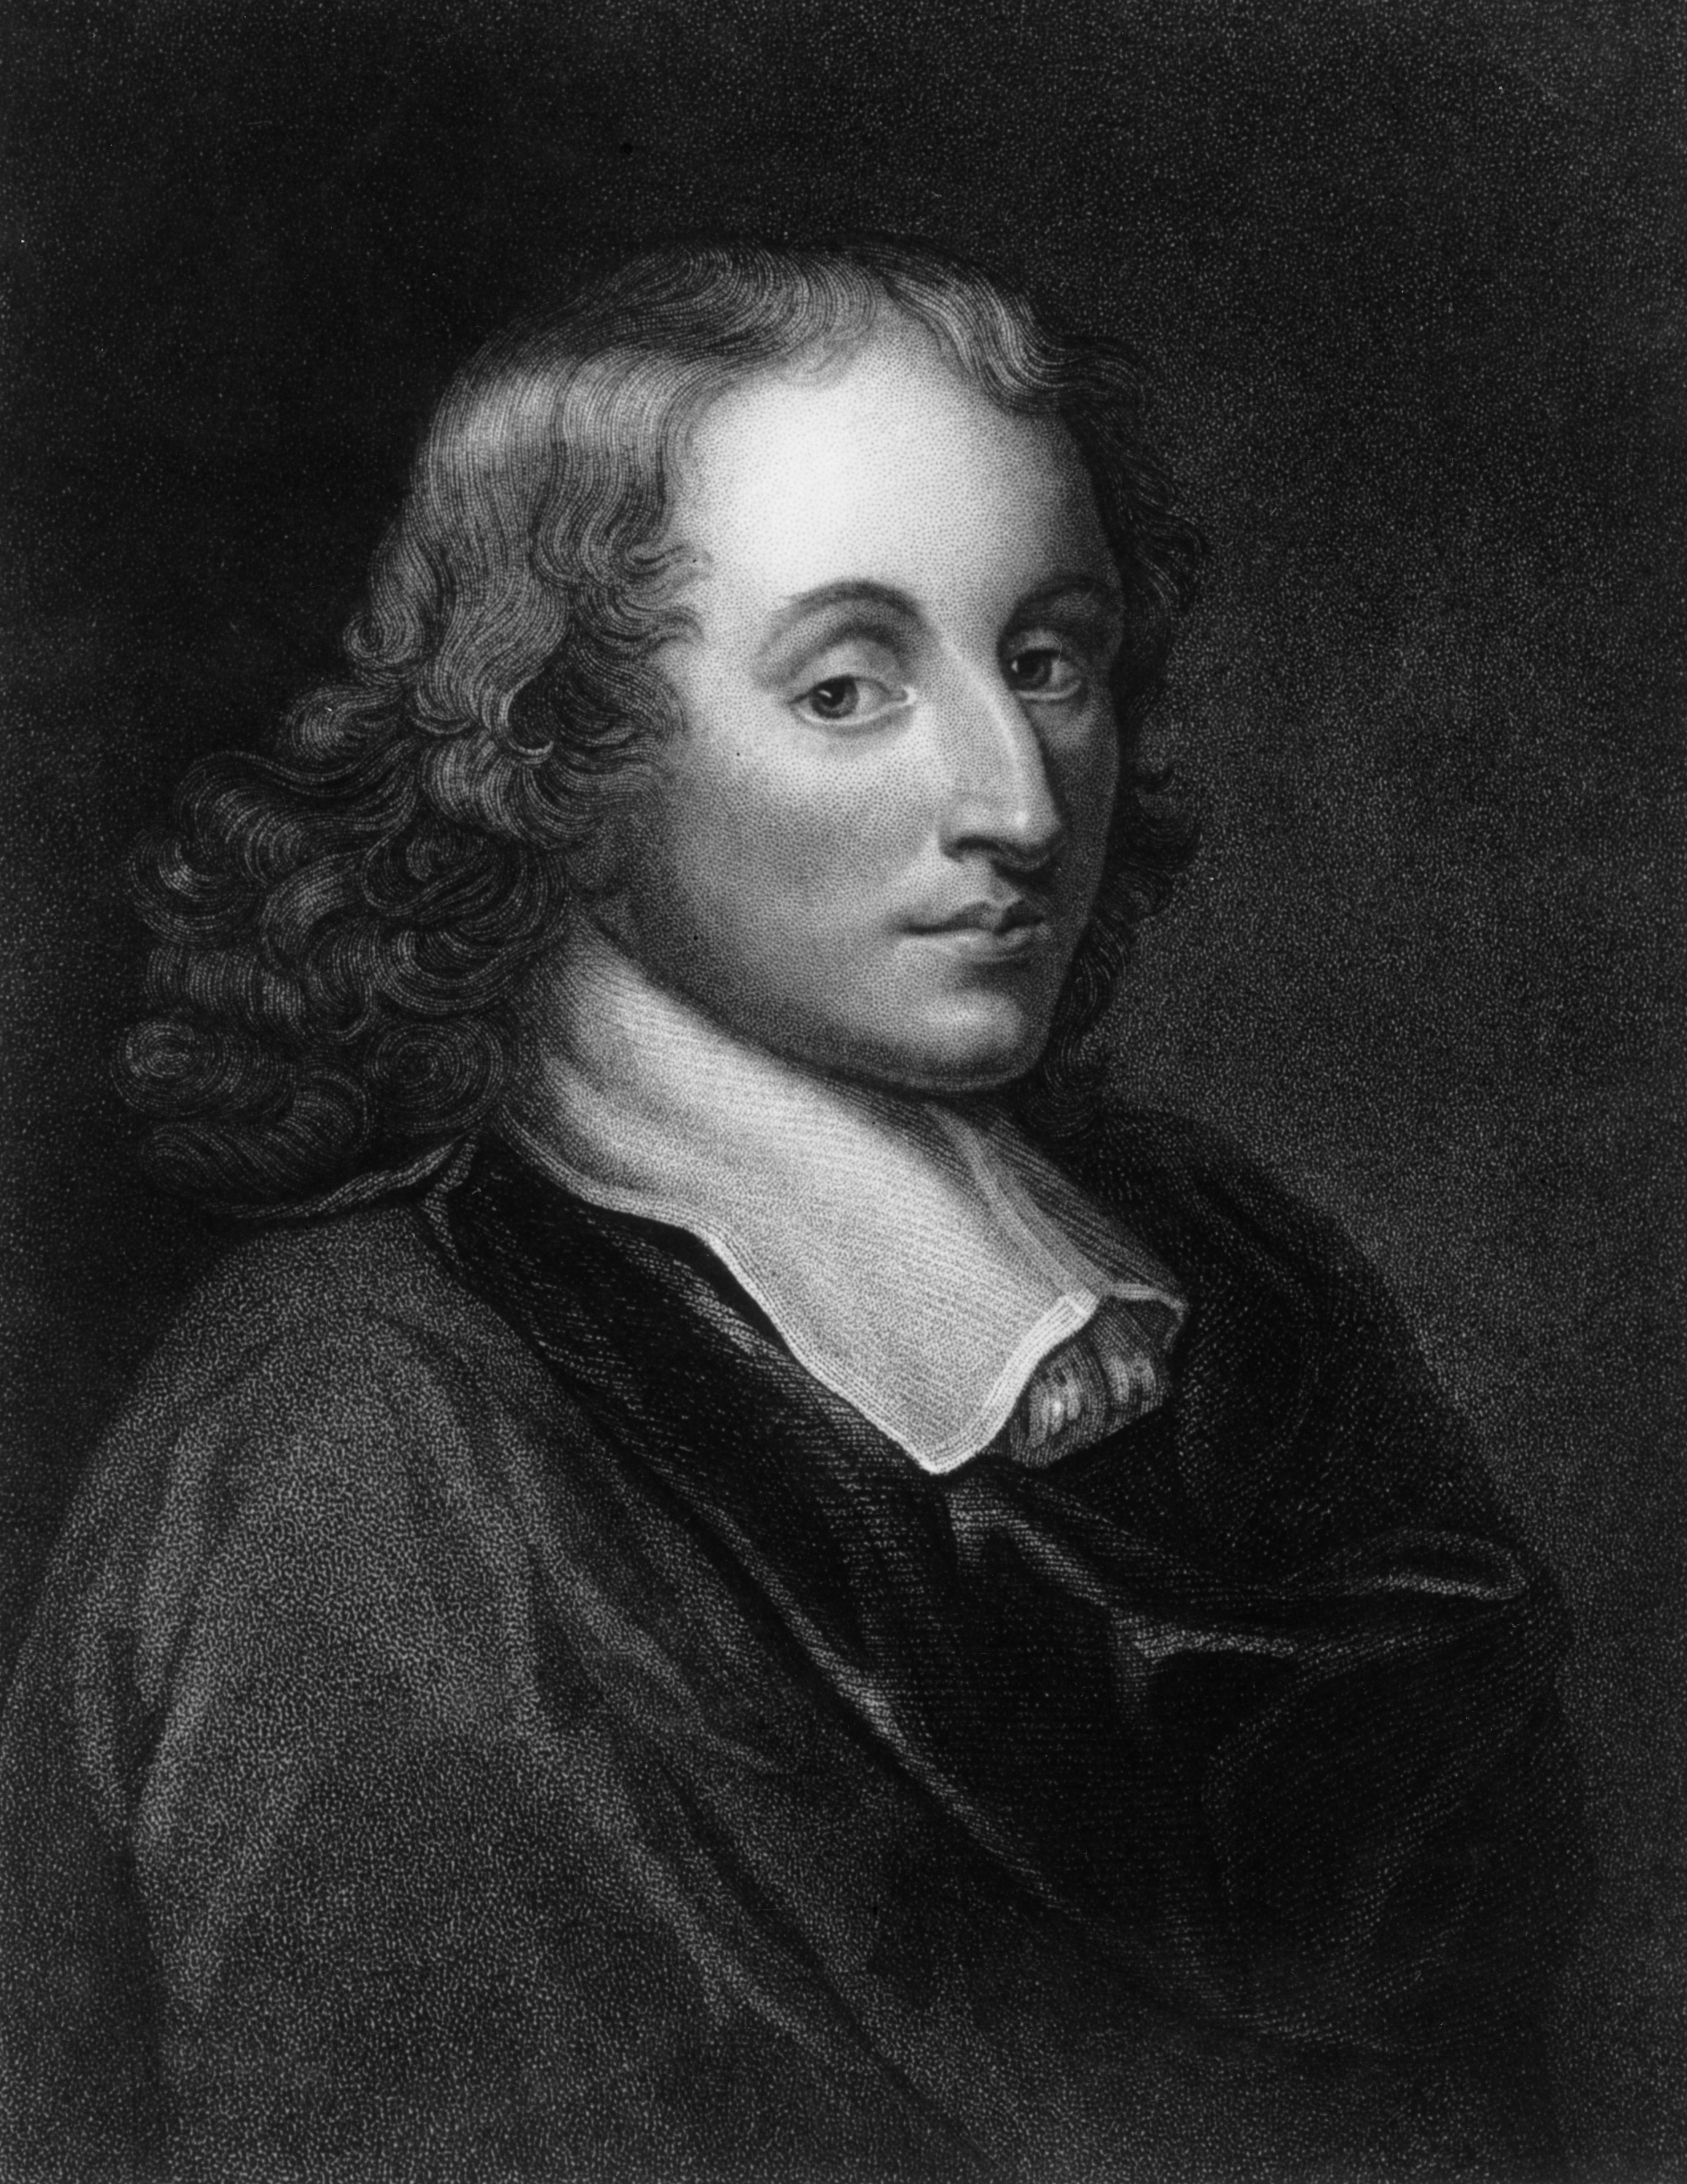 a biography of blaise pascal Blaise pascal (june 19, 1623 - august 19, 1662) was a great contributor to math, science, and philosophy, especially christian philosophy.